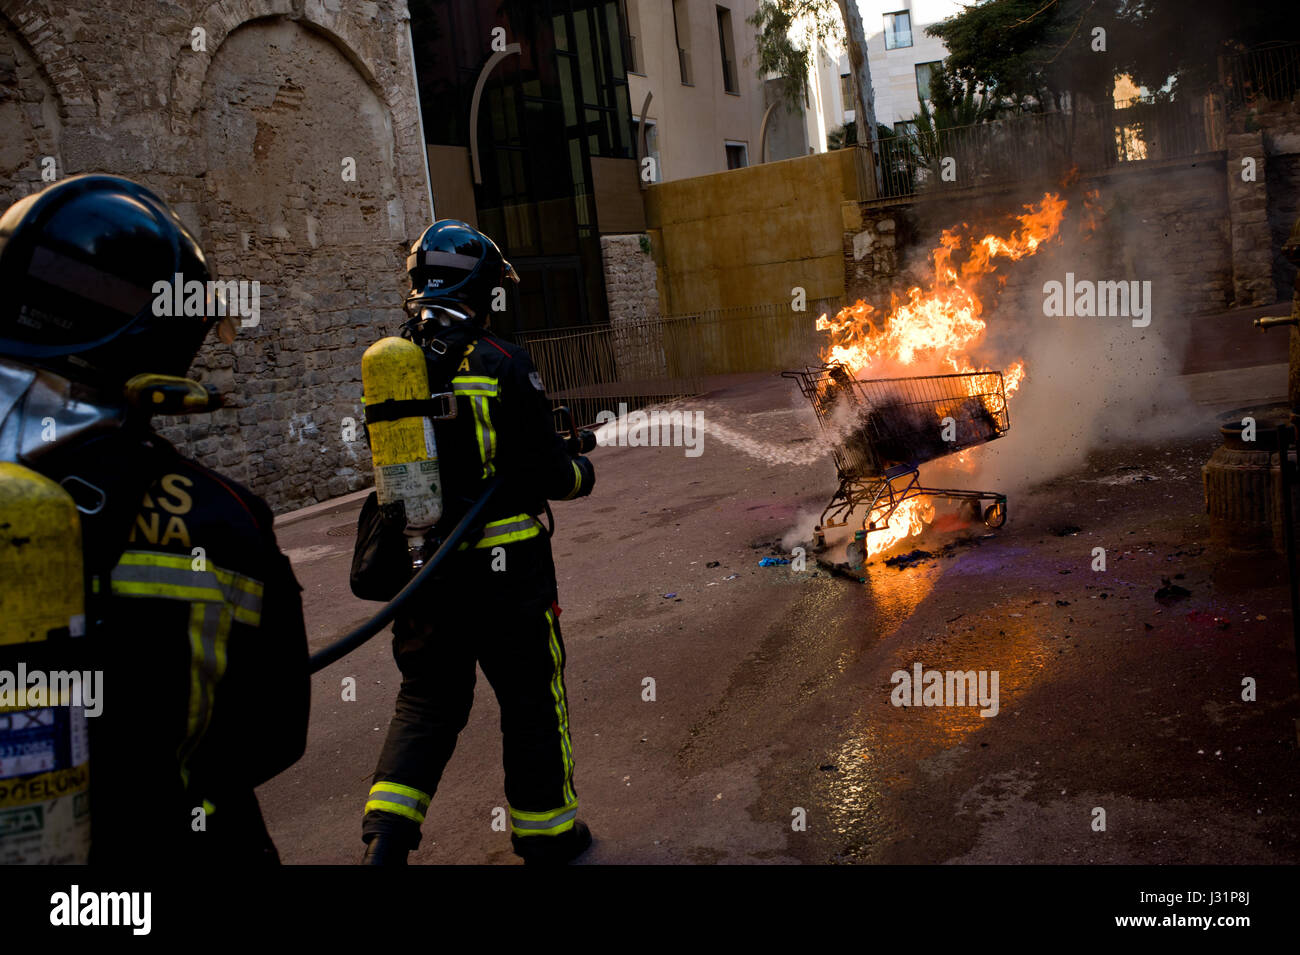 Barcelona, Spain. 01st May, 2017. May 1, 2017 - Barcelona, Catalonia, Spain - Firefighters extinguish a burning - Stock Image